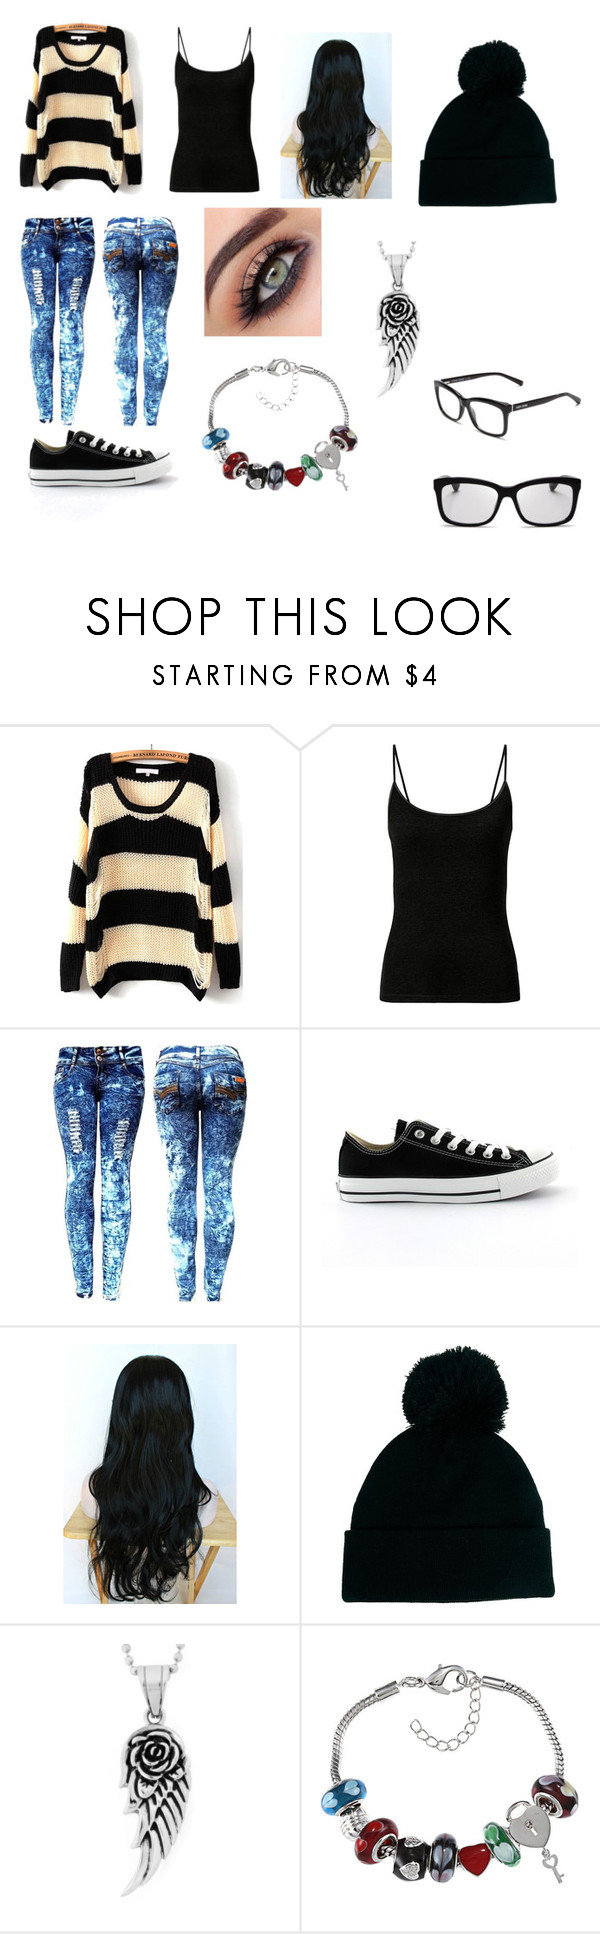 """Untitled #723"" by samantha-myers-2 ❤ liked on Polyvore featuring Converse, ASOS, West Coast Jewelry, La Preciosa and Bobbi Brown Cosmetics"